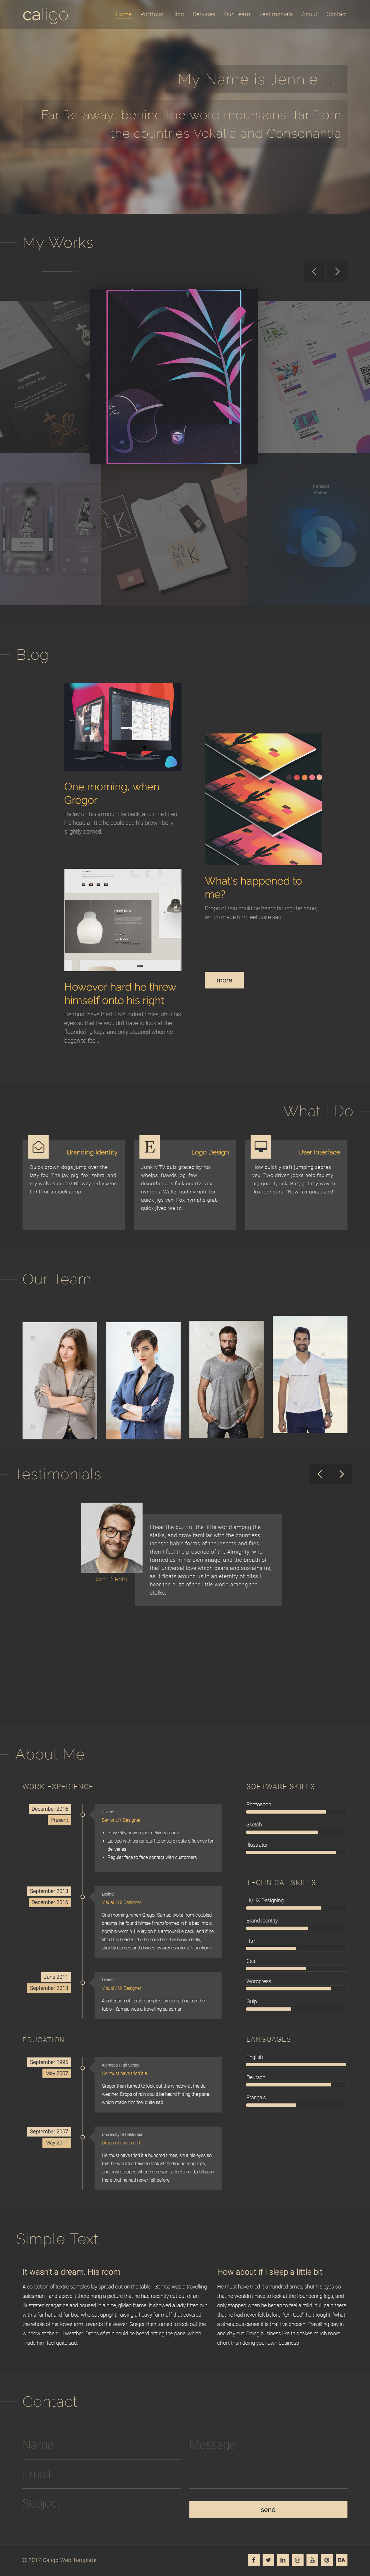 40 Best Freelance Website Templates 2017 - Responsive Miracle